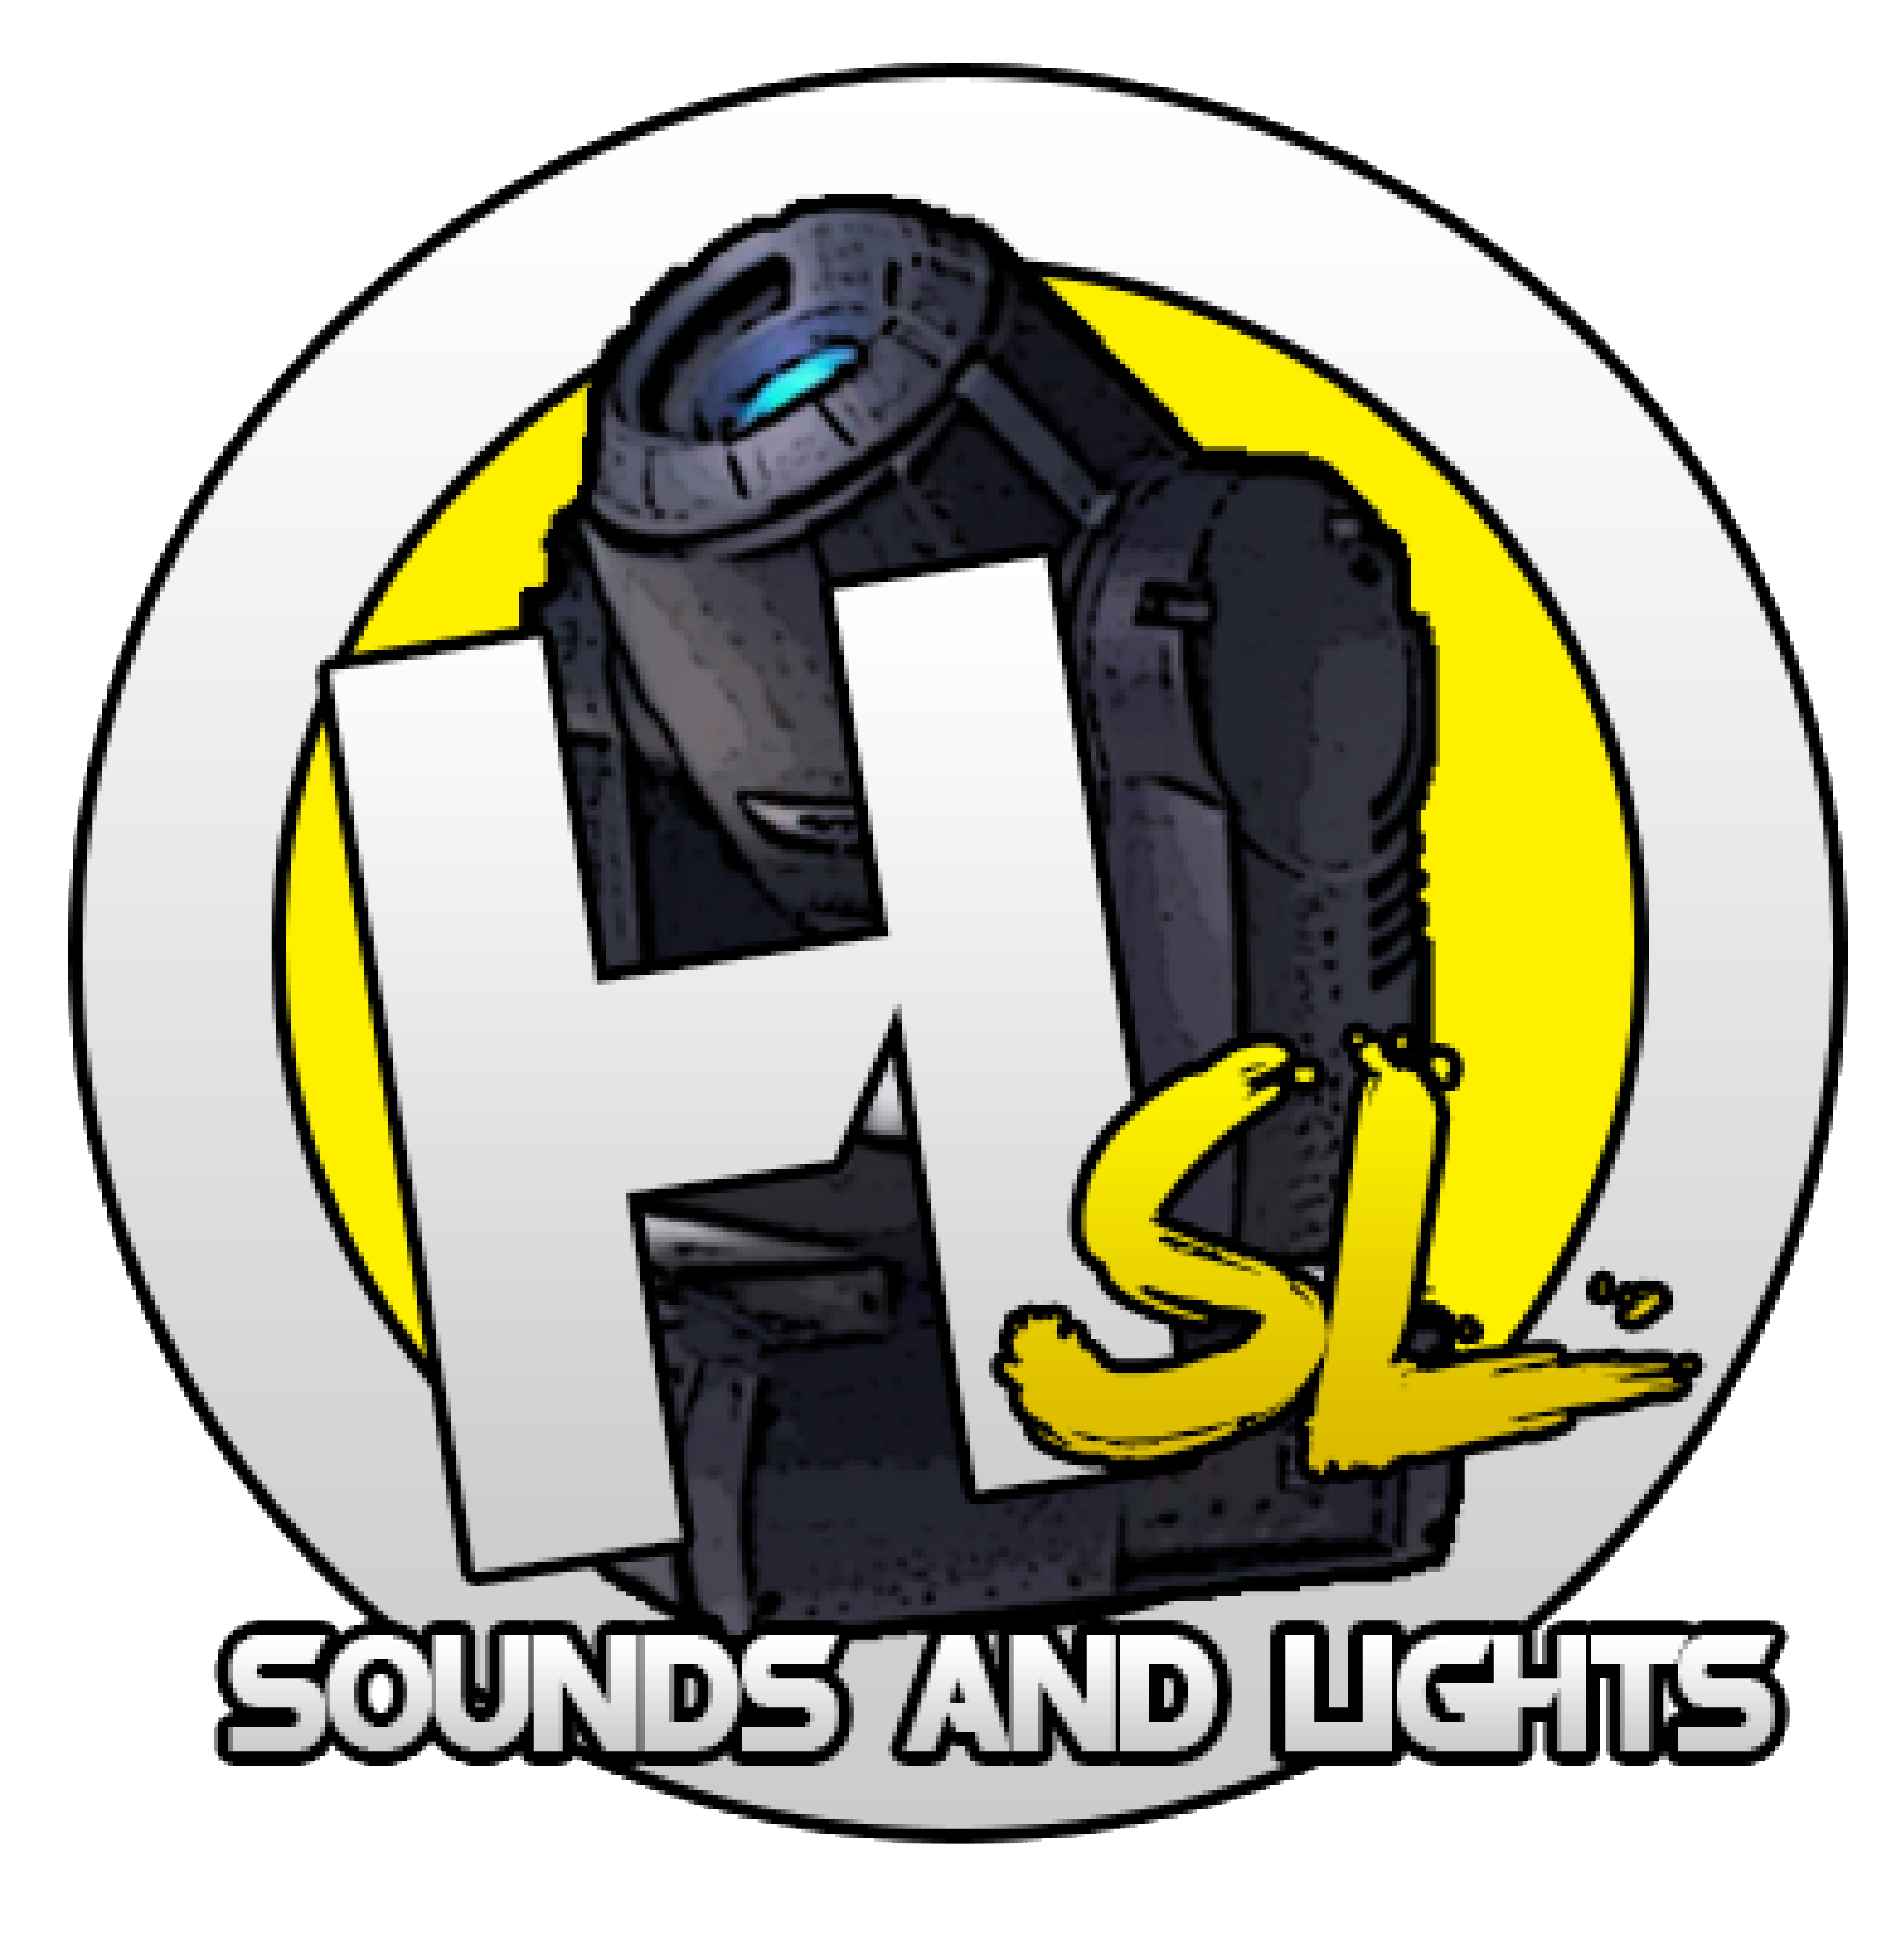 HSL Sounds and Lights